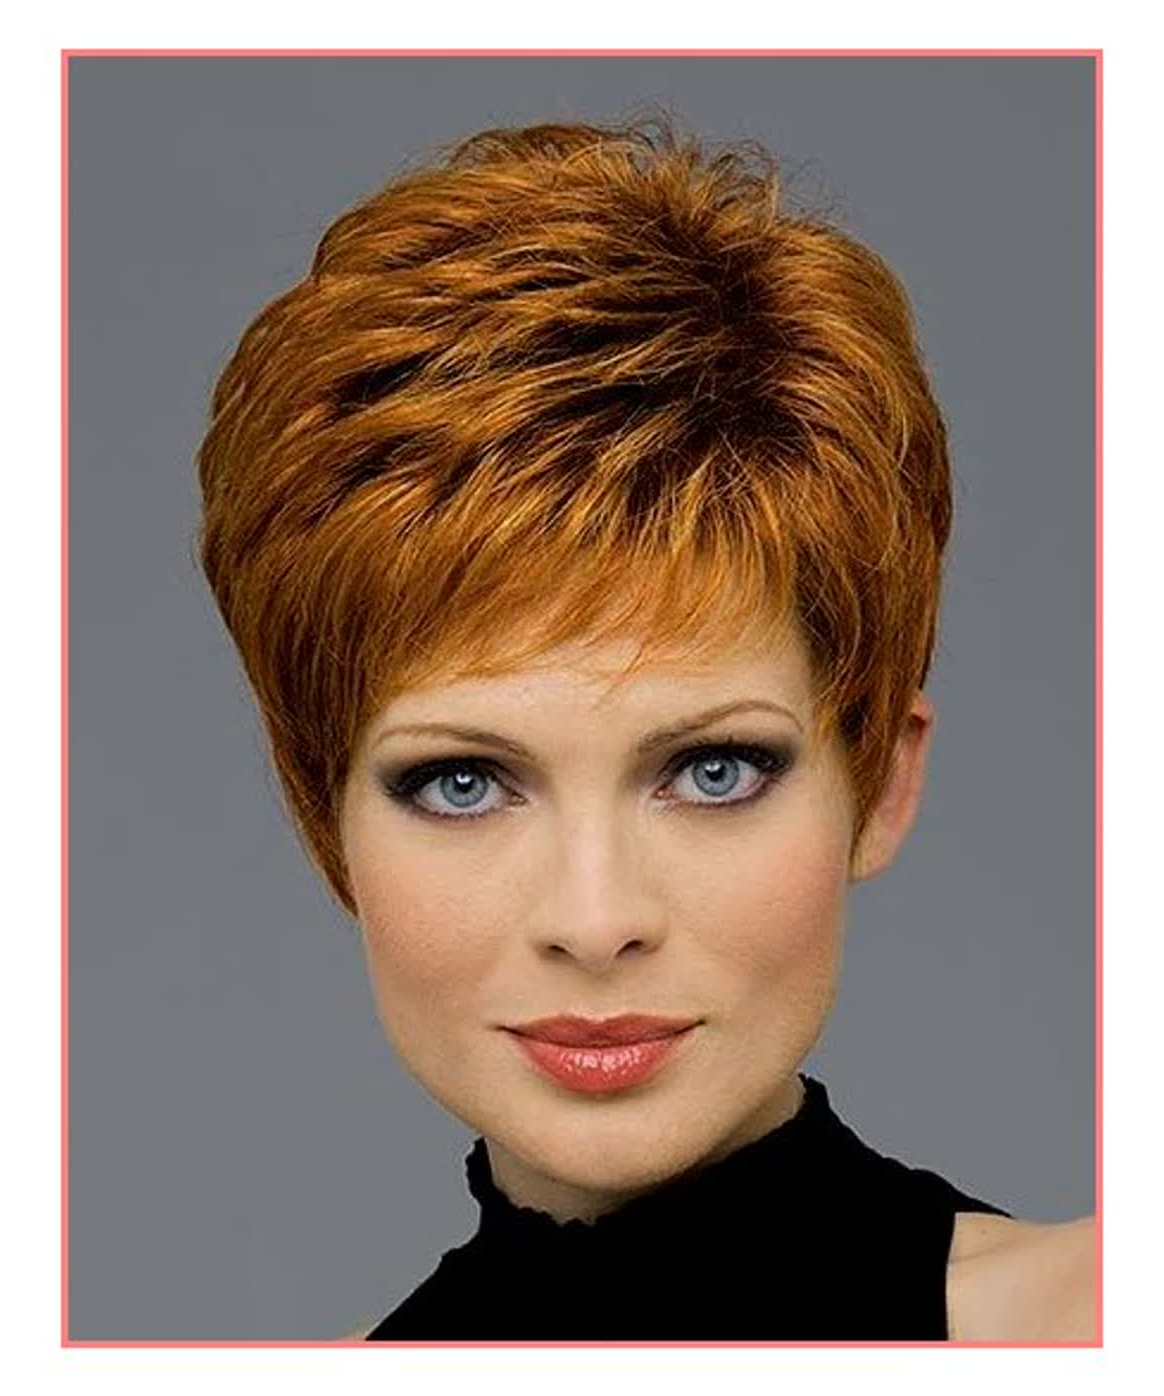 Ladies Hairstyles For Over 50S | Women Hairstyles Intended For Hairstyles For The Over 50S Short (View 5 of 25)